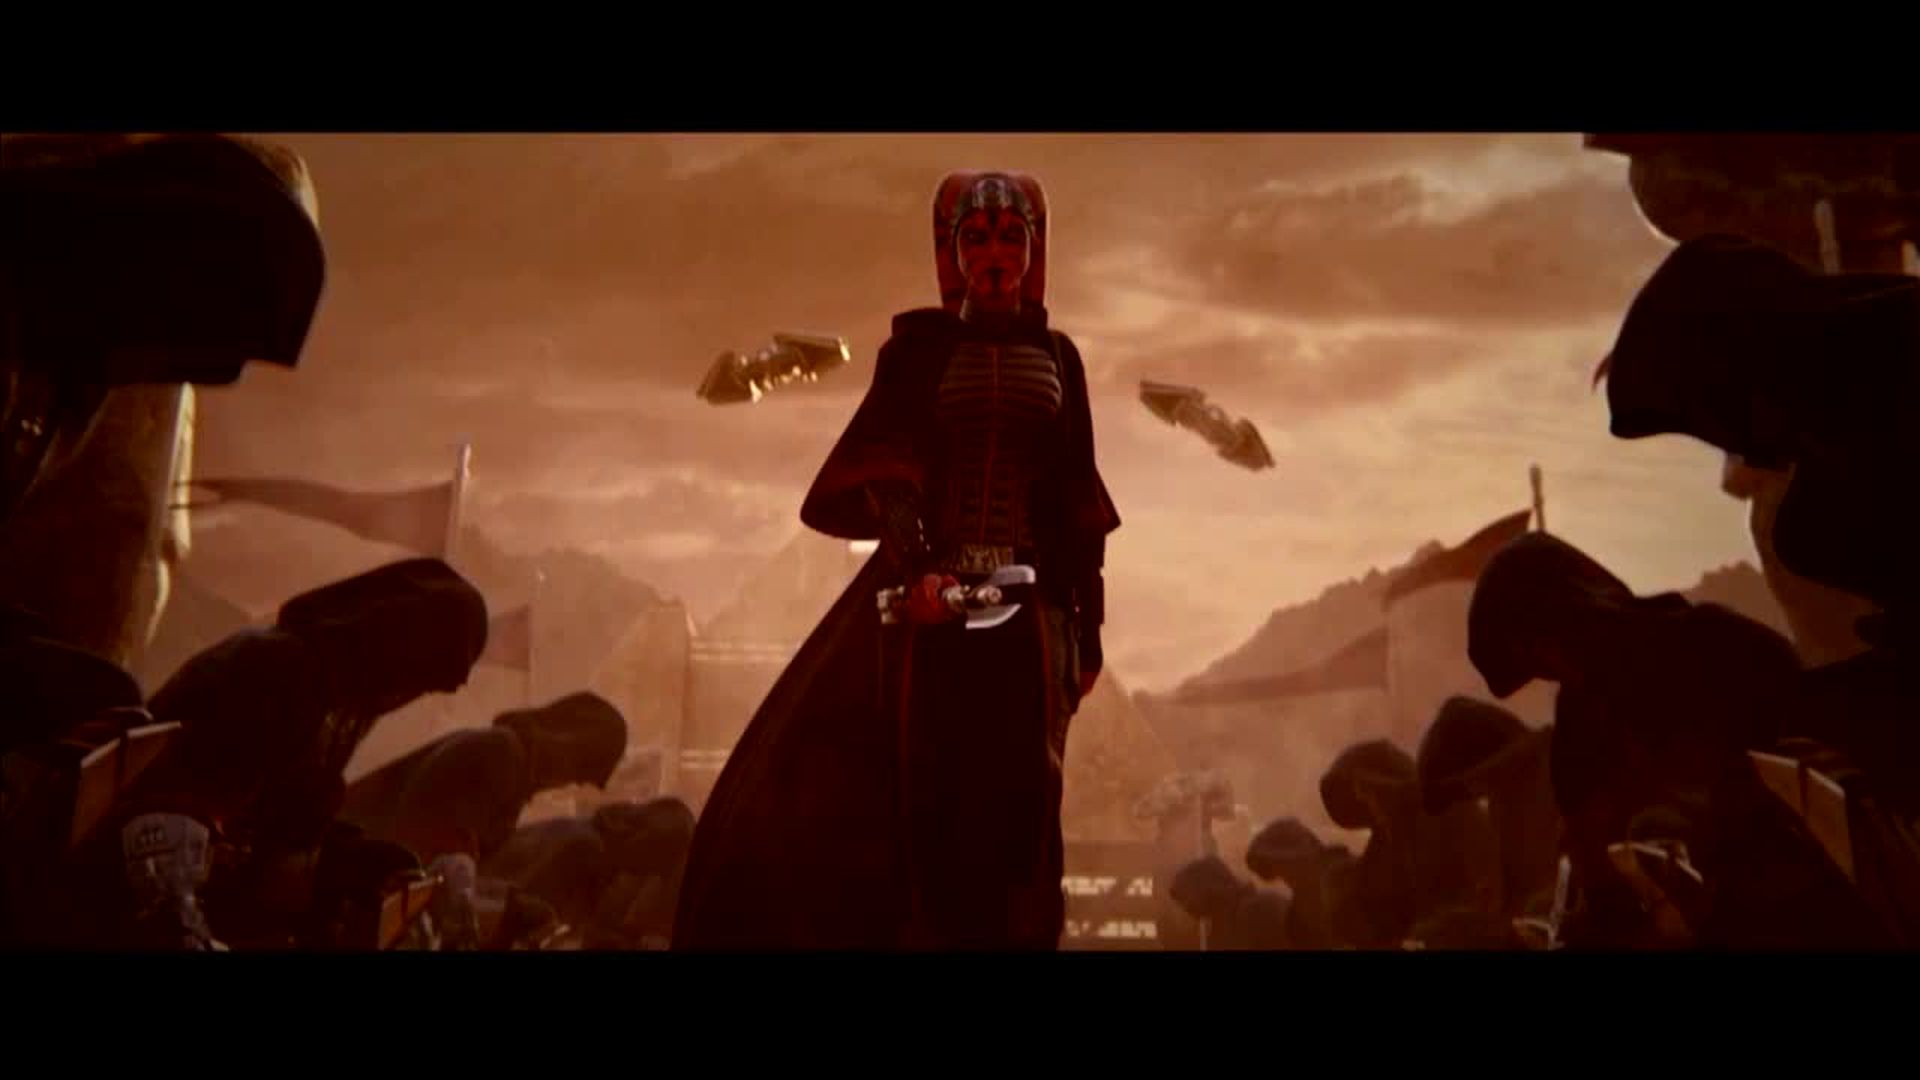 Star Wars: The Old Republic deserves a second chance - Polygon